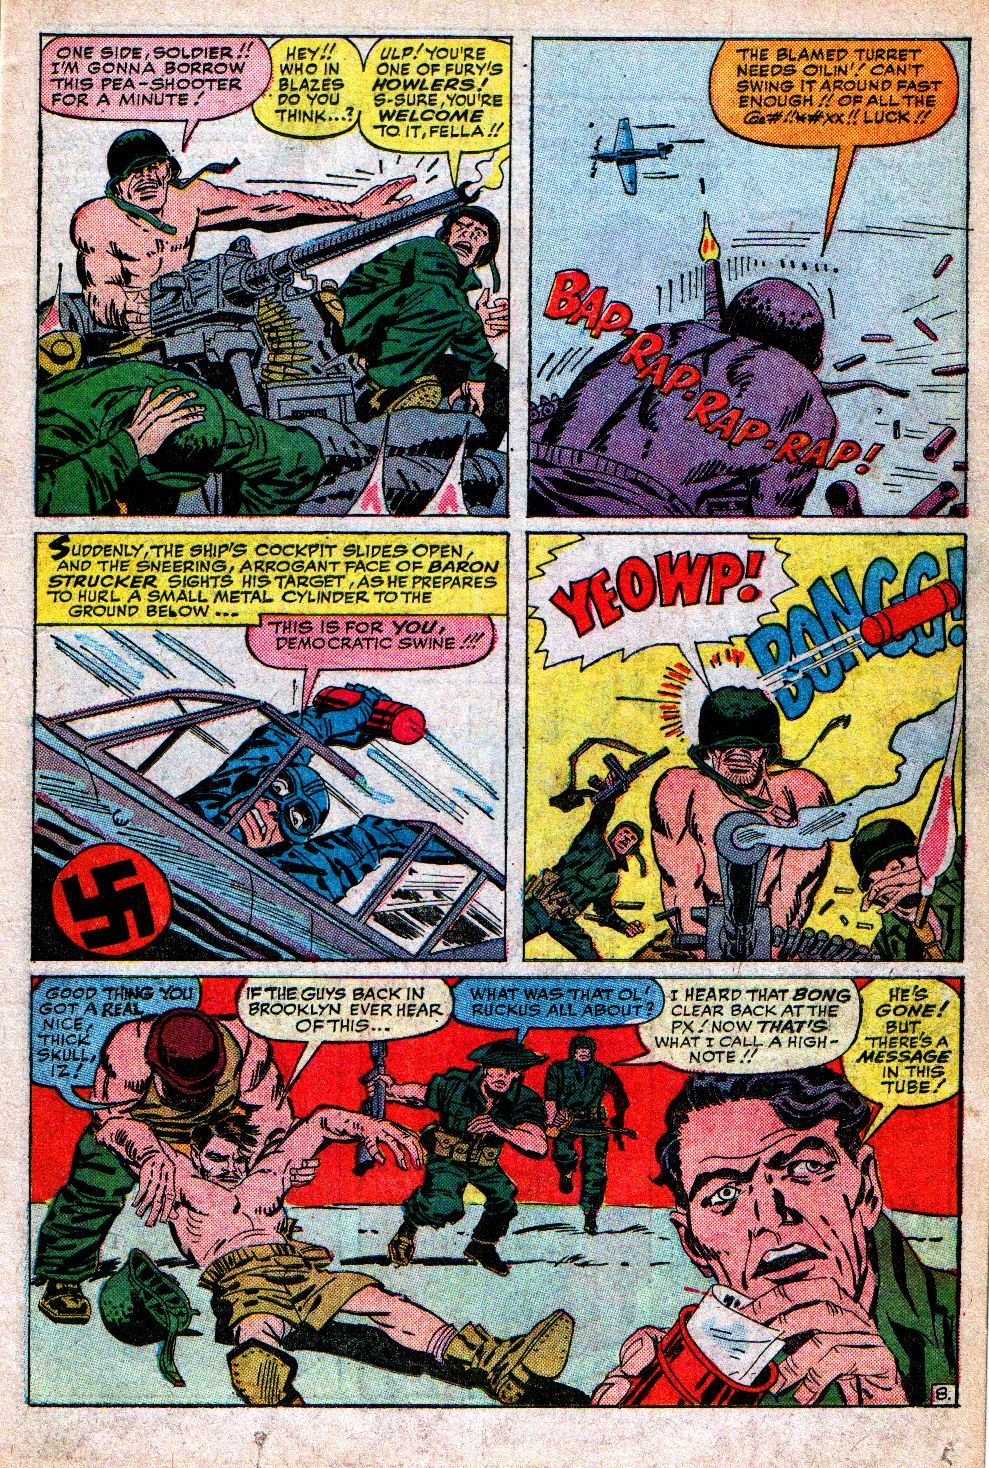 Read online Sgt. Fury comic -  Issue #5 - 11